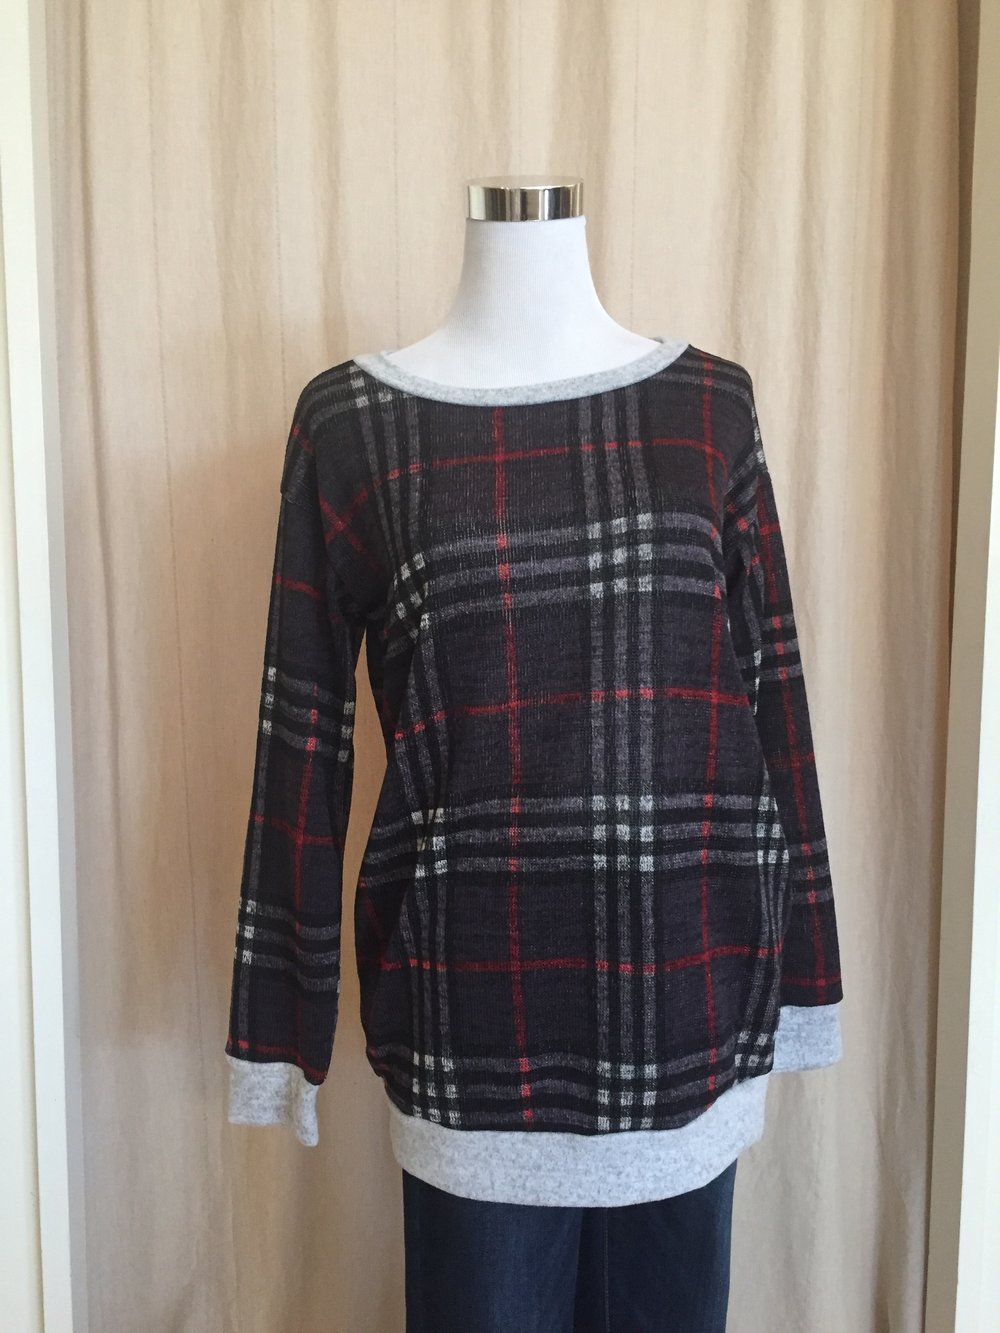 White Birch Plaid Top (Light and Dark Grey $32)